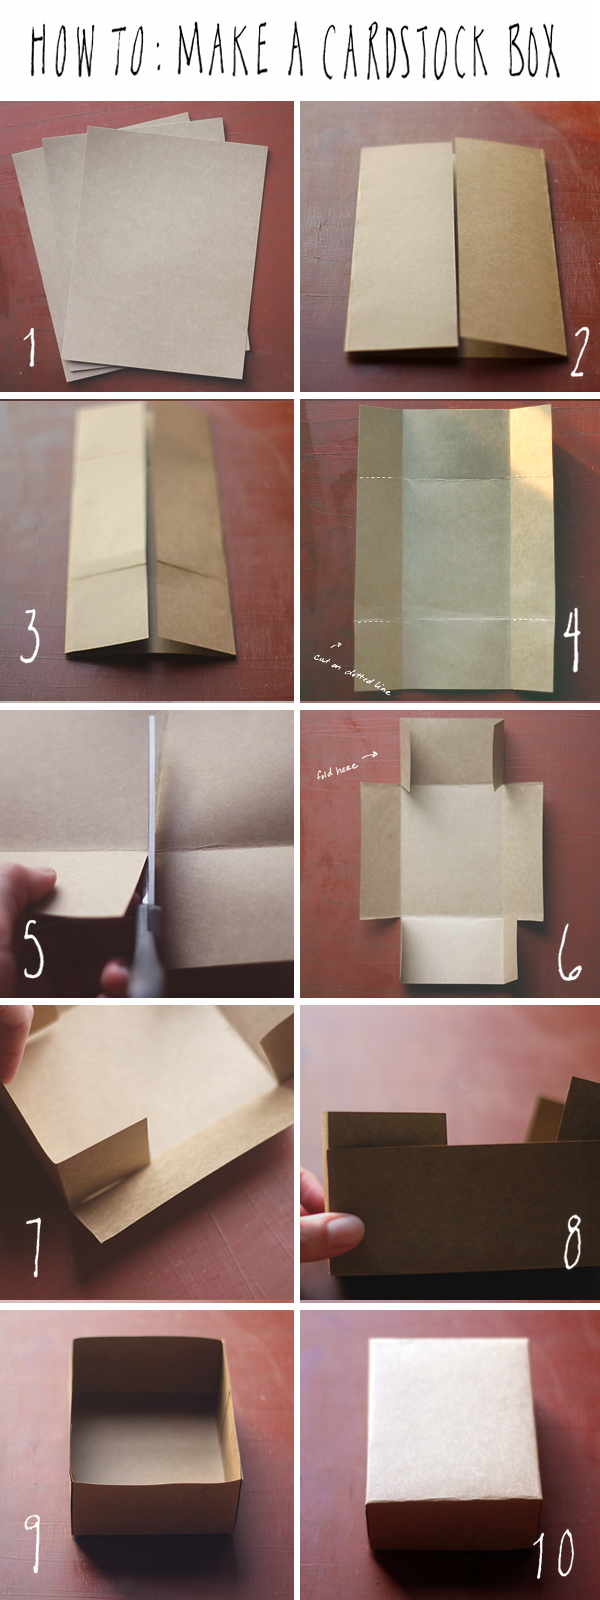 DIY cardstock box steps